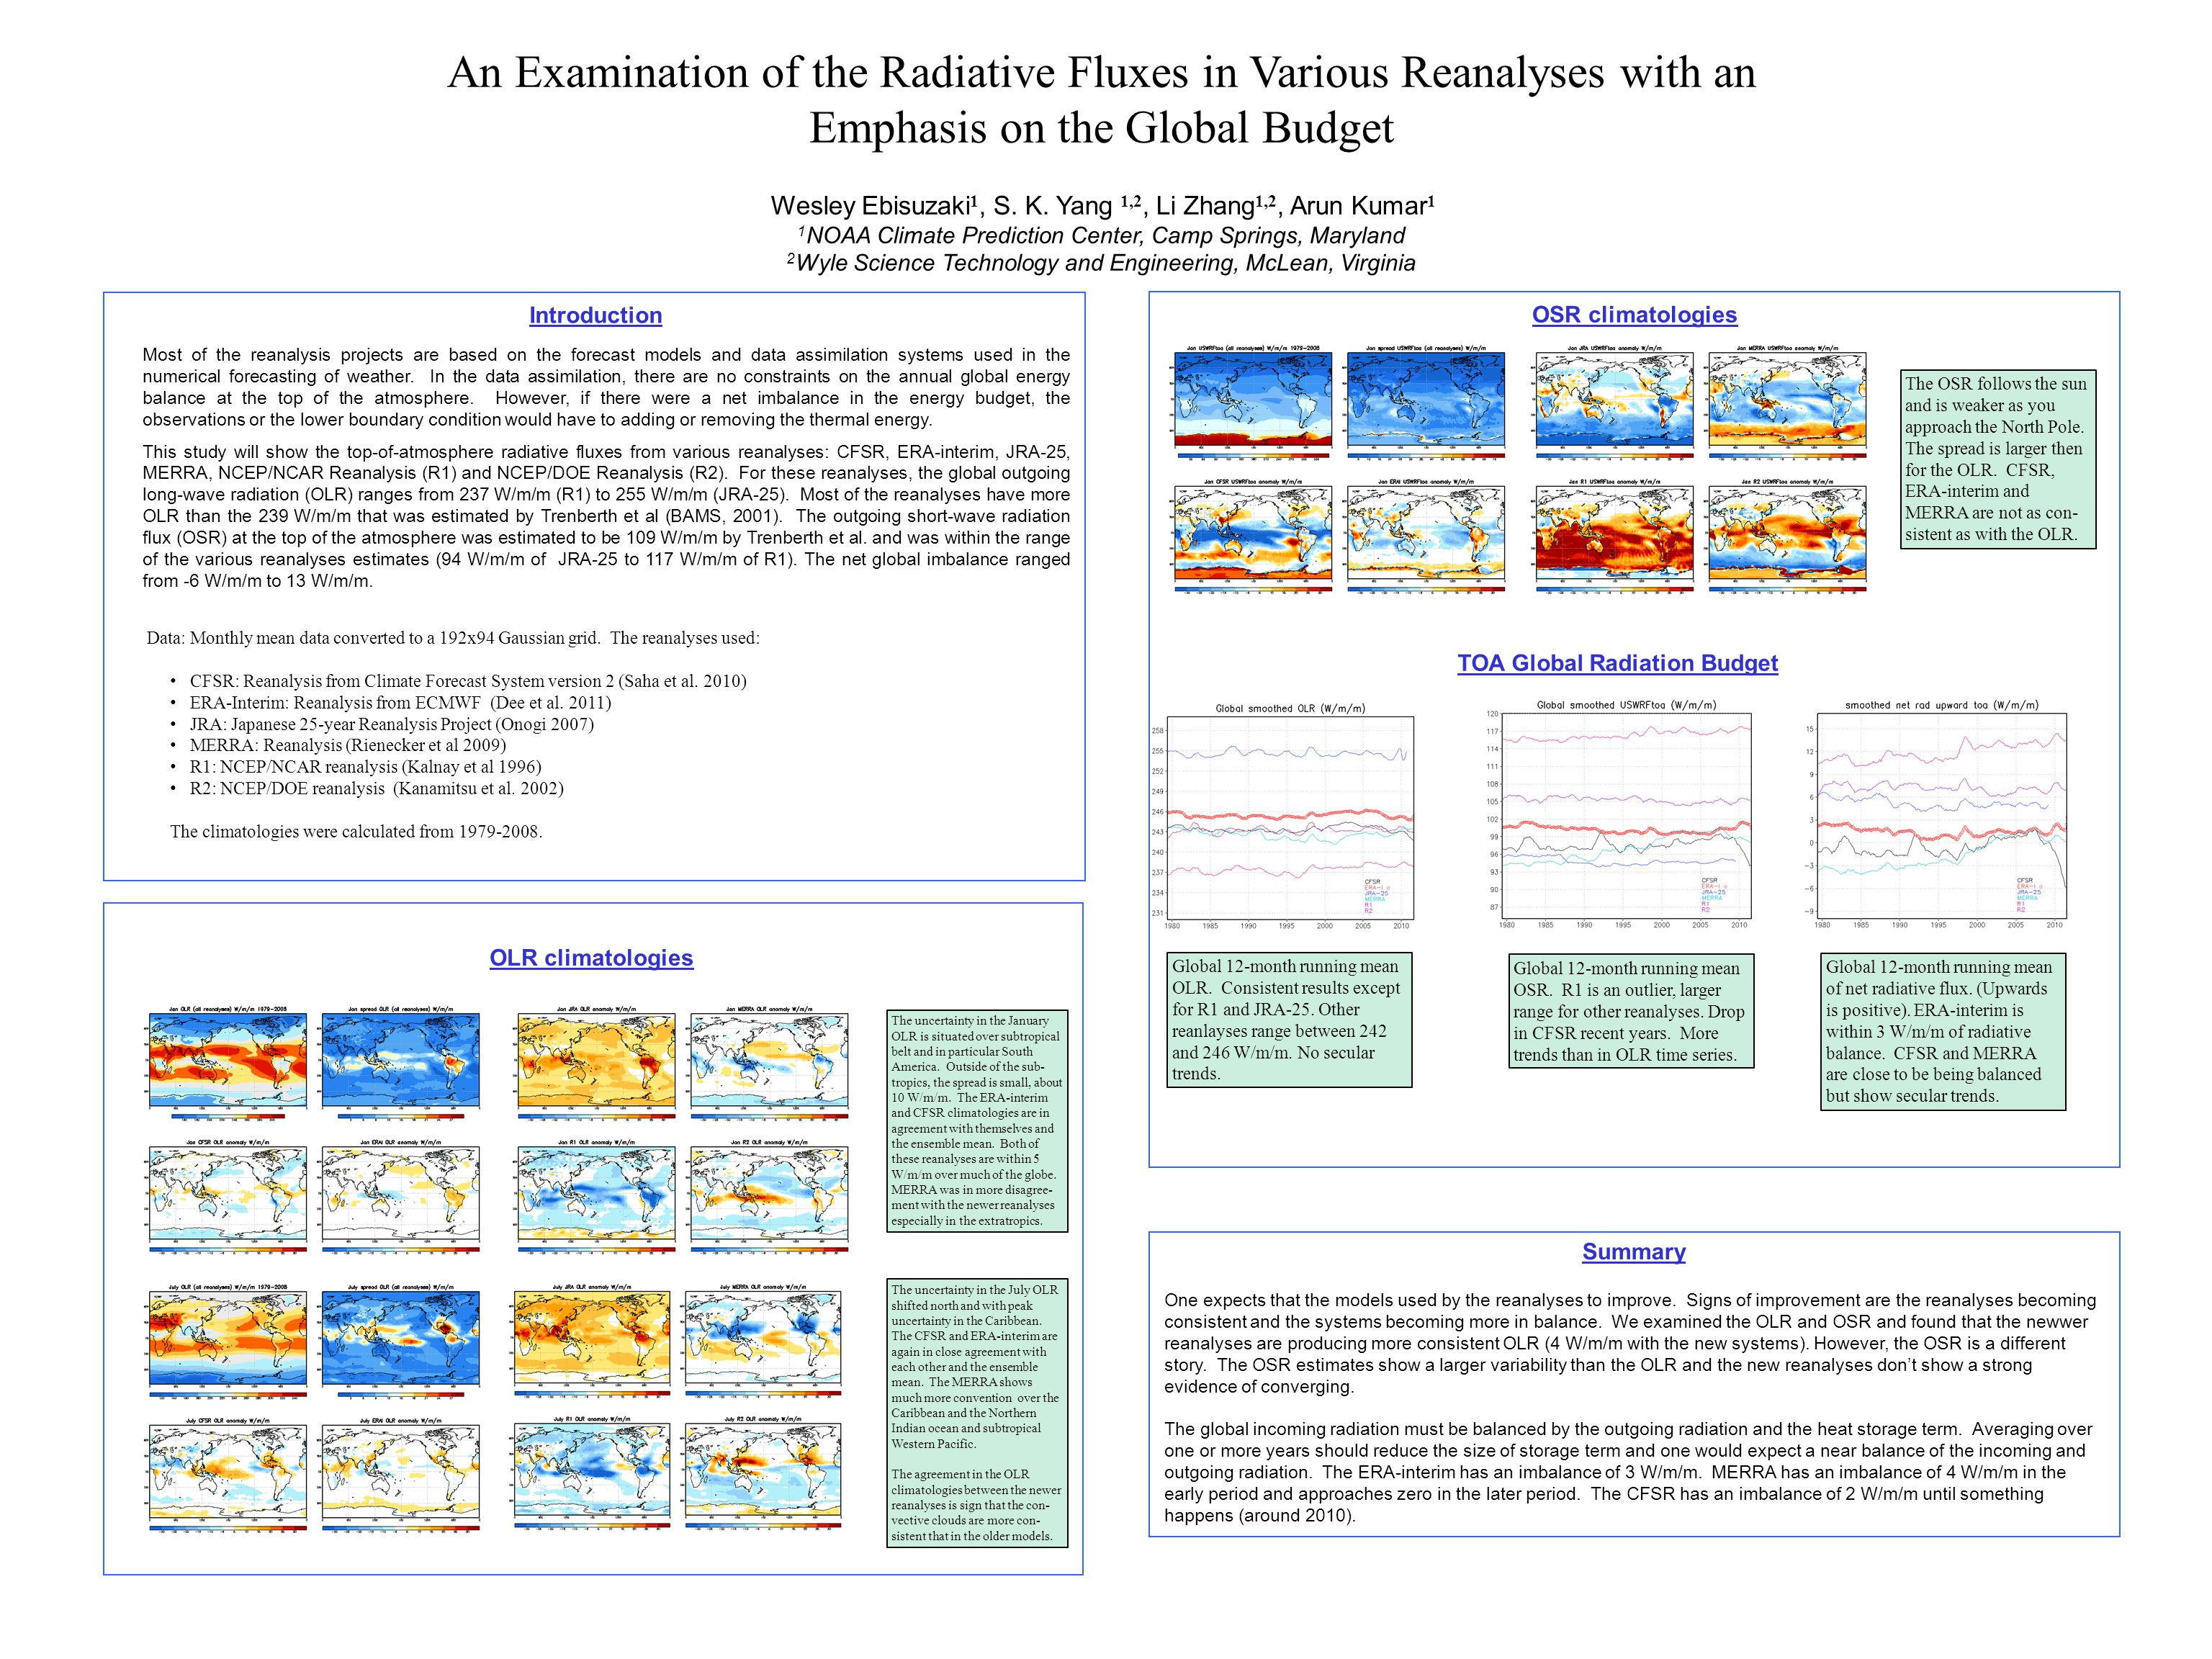 An Examination of the Radiative Fluxes in Various Reanalyses with an Emphasis on the Global Budget Wesley Ebisuzaki 1, S. K. Yang 1,2, Li Zhang 1,2, A